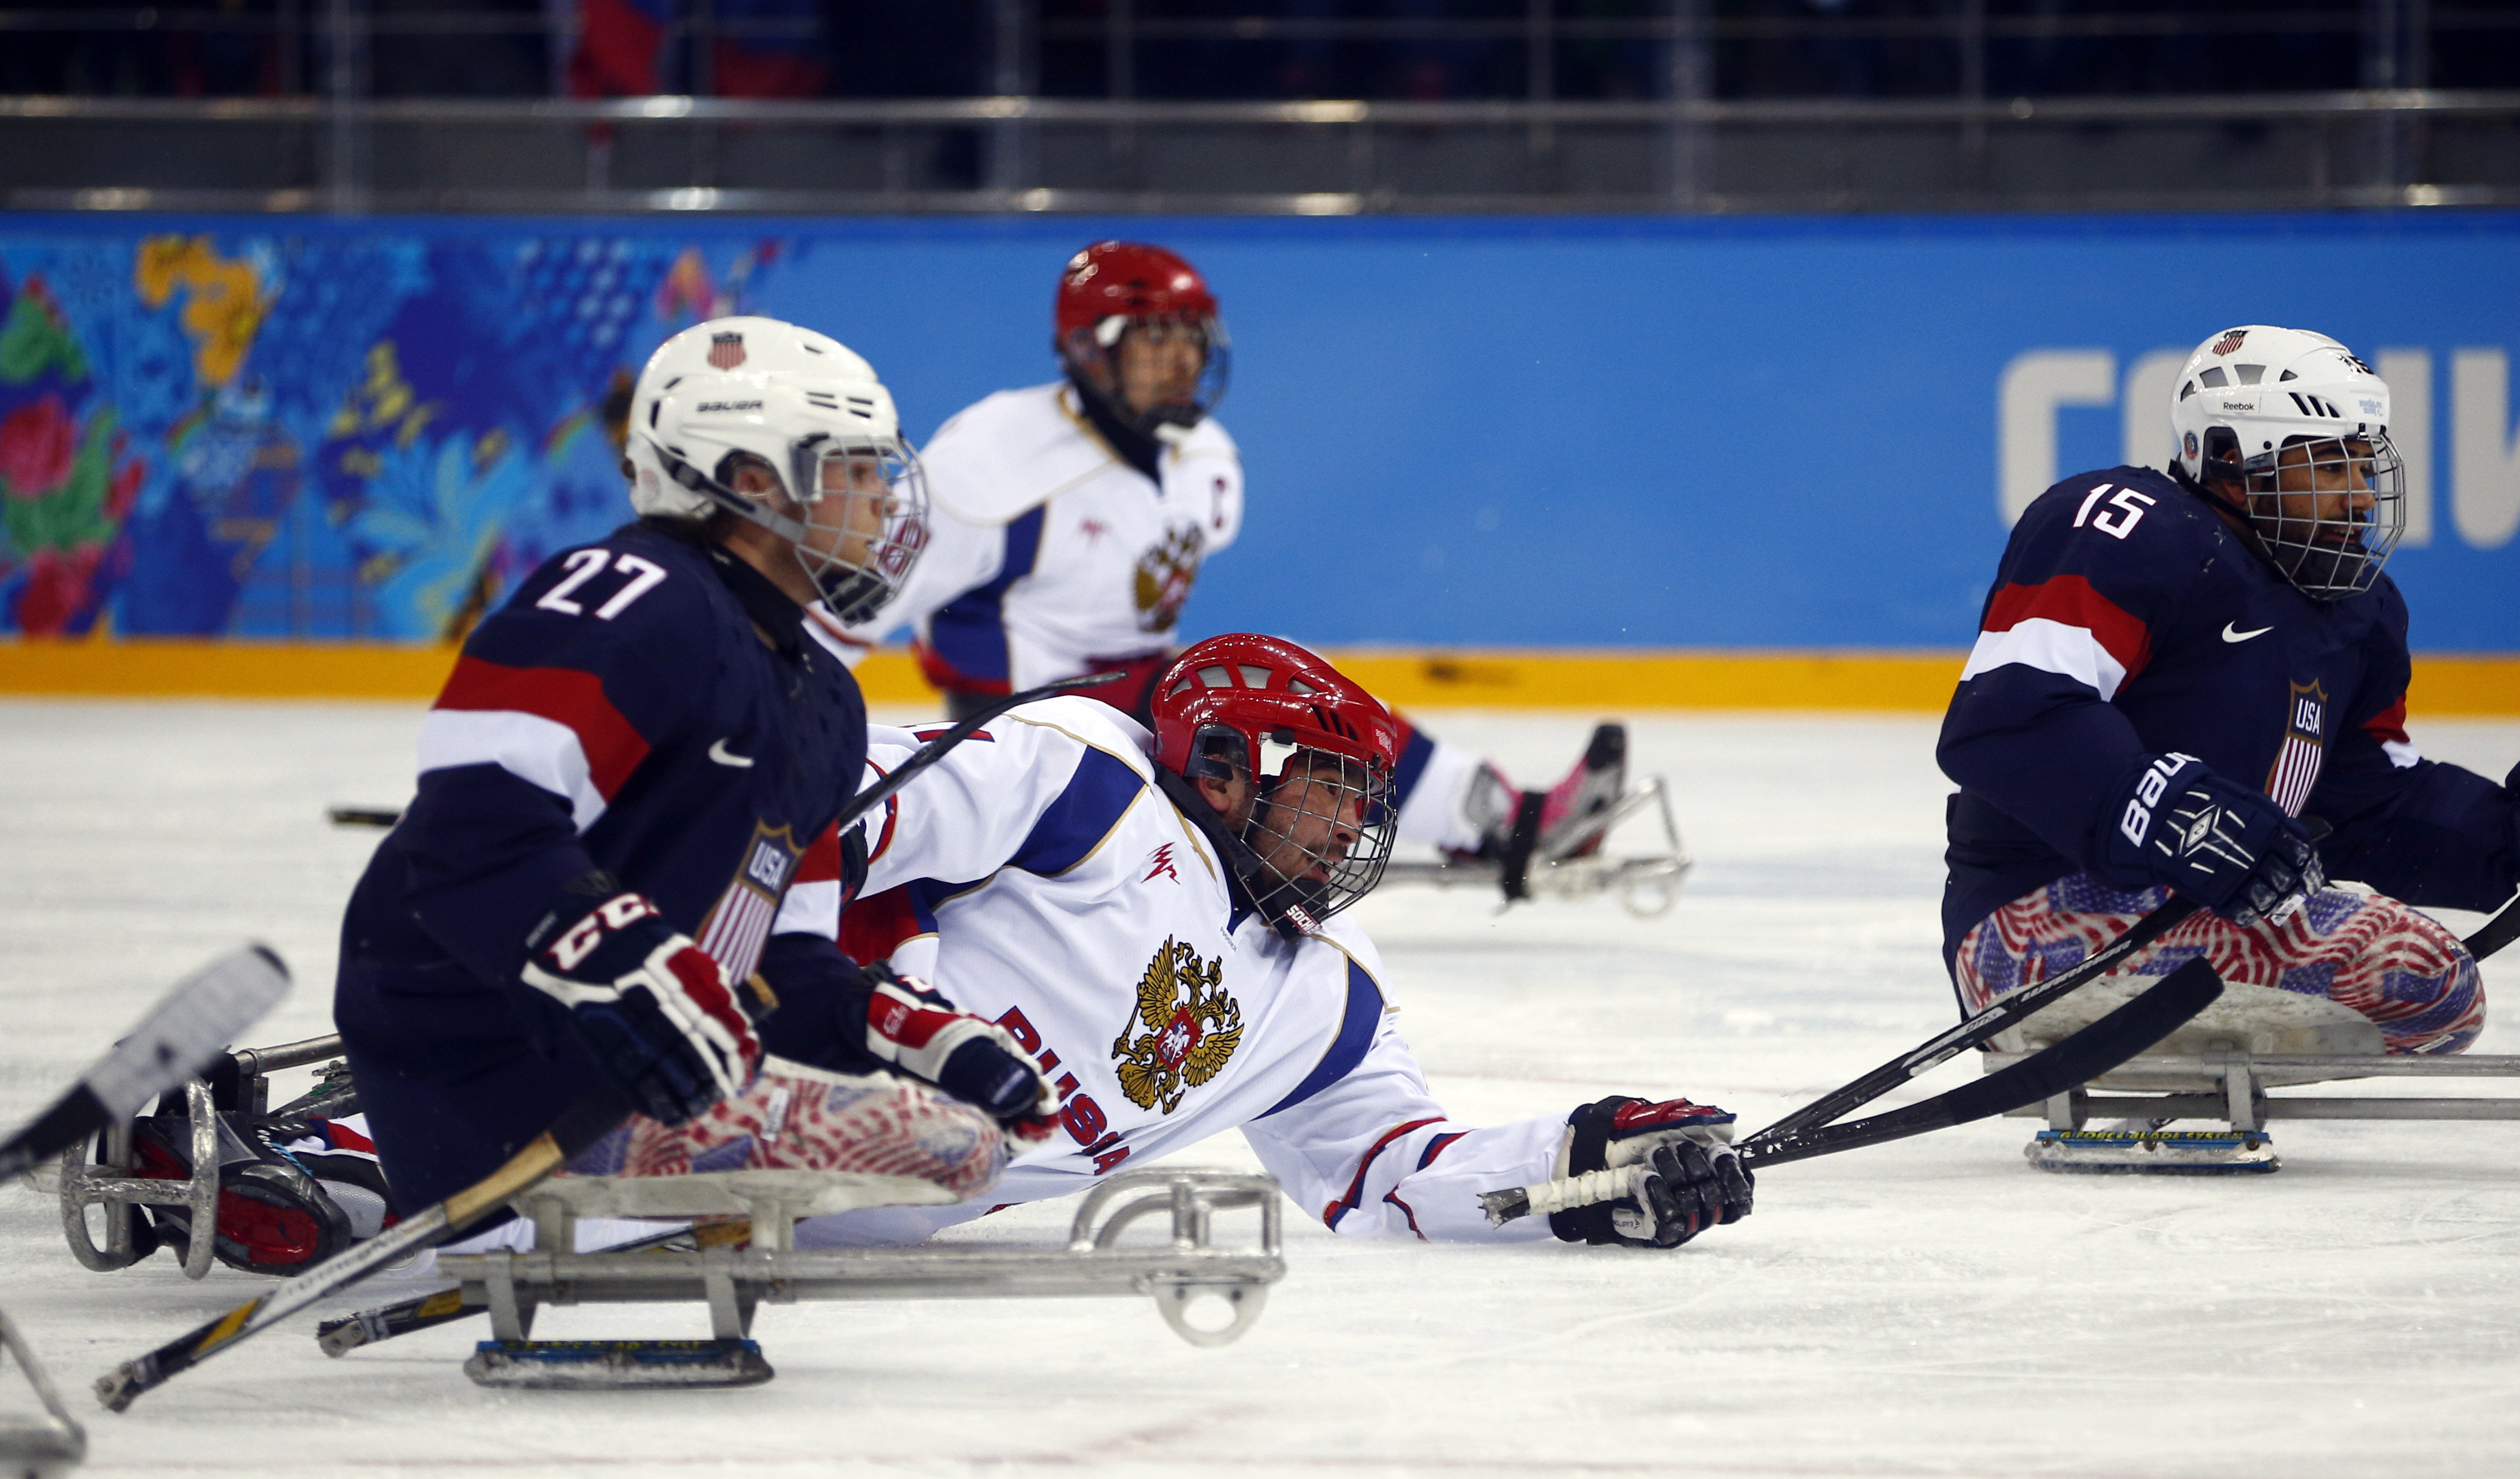 Russia's Evgeny Petrov, center, shoots on goal as United States' Joshua Pauls, left, makes a challenge during an ice sledge hockey match between United States and Russia at the 2014 Winter Paralympics in Sochi, Russia, Tuesday March 11, 2014. (AP Photo/Pavel Golovkin)